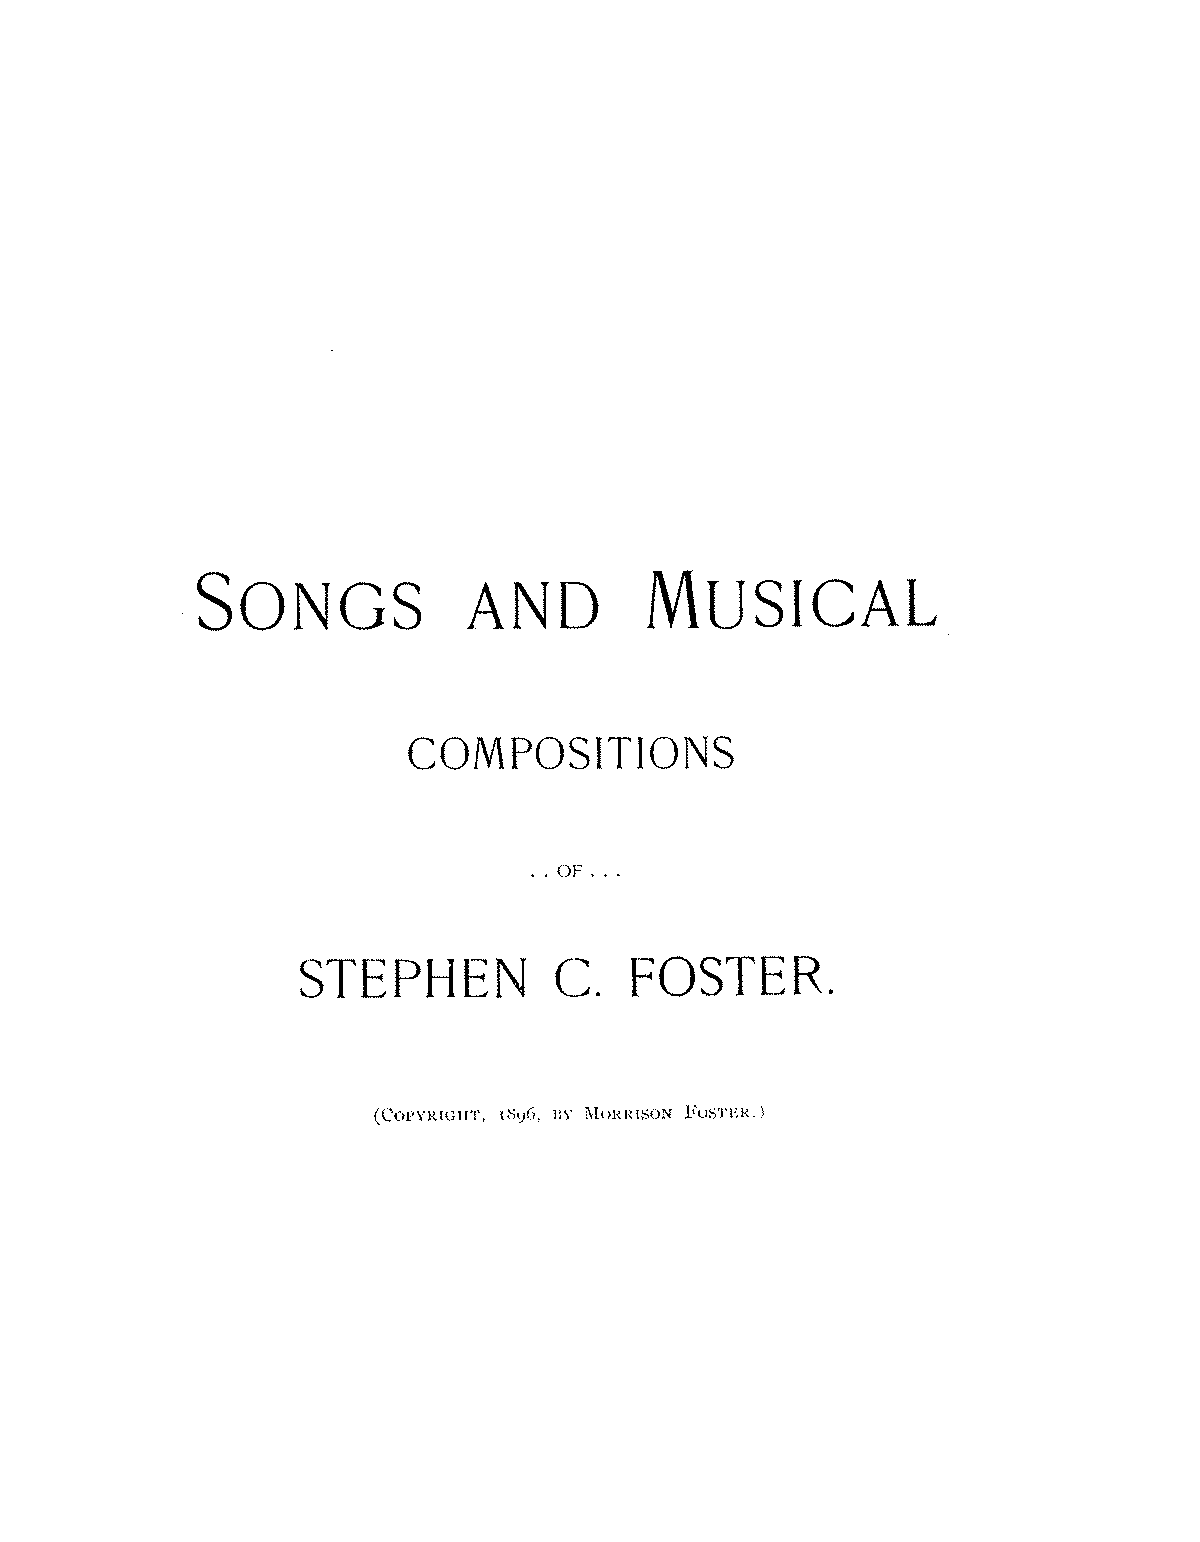 PMLP652557-Foster-Songs1896coll.pdf